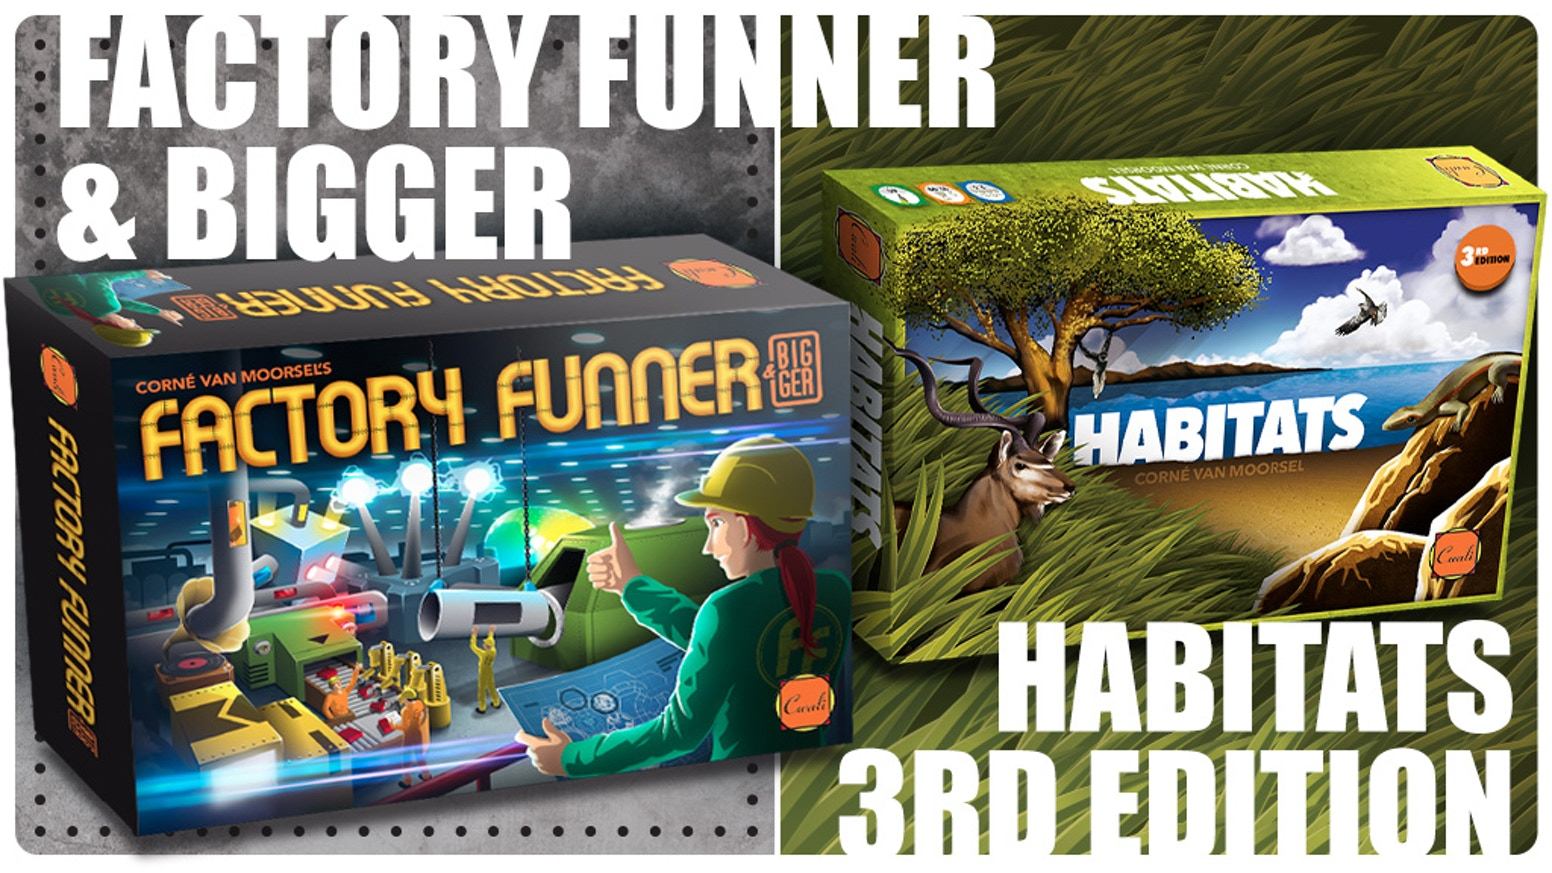 Factory Funnerbigger And Habitats 3rd Edition By Corn Van Moorsel Switch Runner 3 Launch Bonus English Us Games Build Your Own Or Wildlife Park Be Creative Efficient In Making